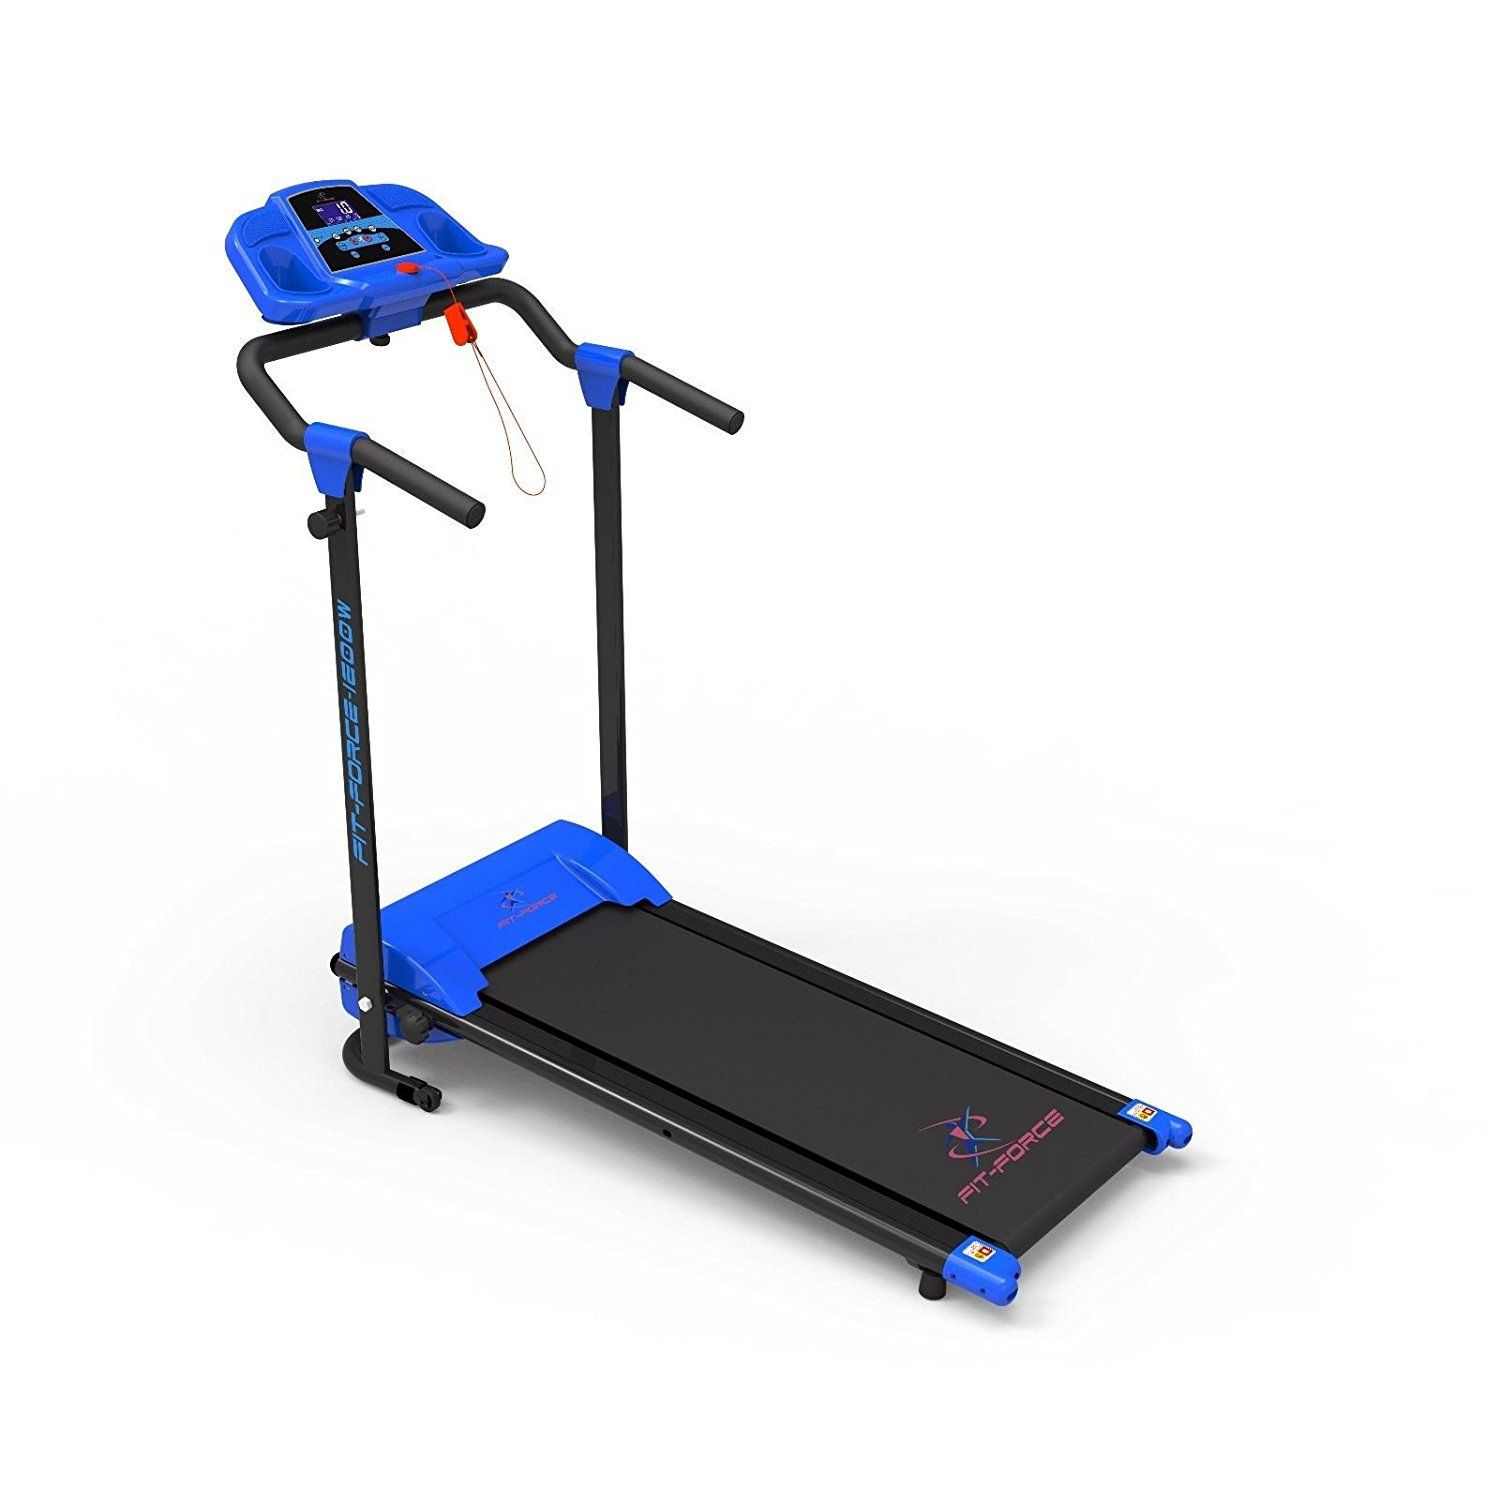 oferta cinta de correr plegable fit-force chollo